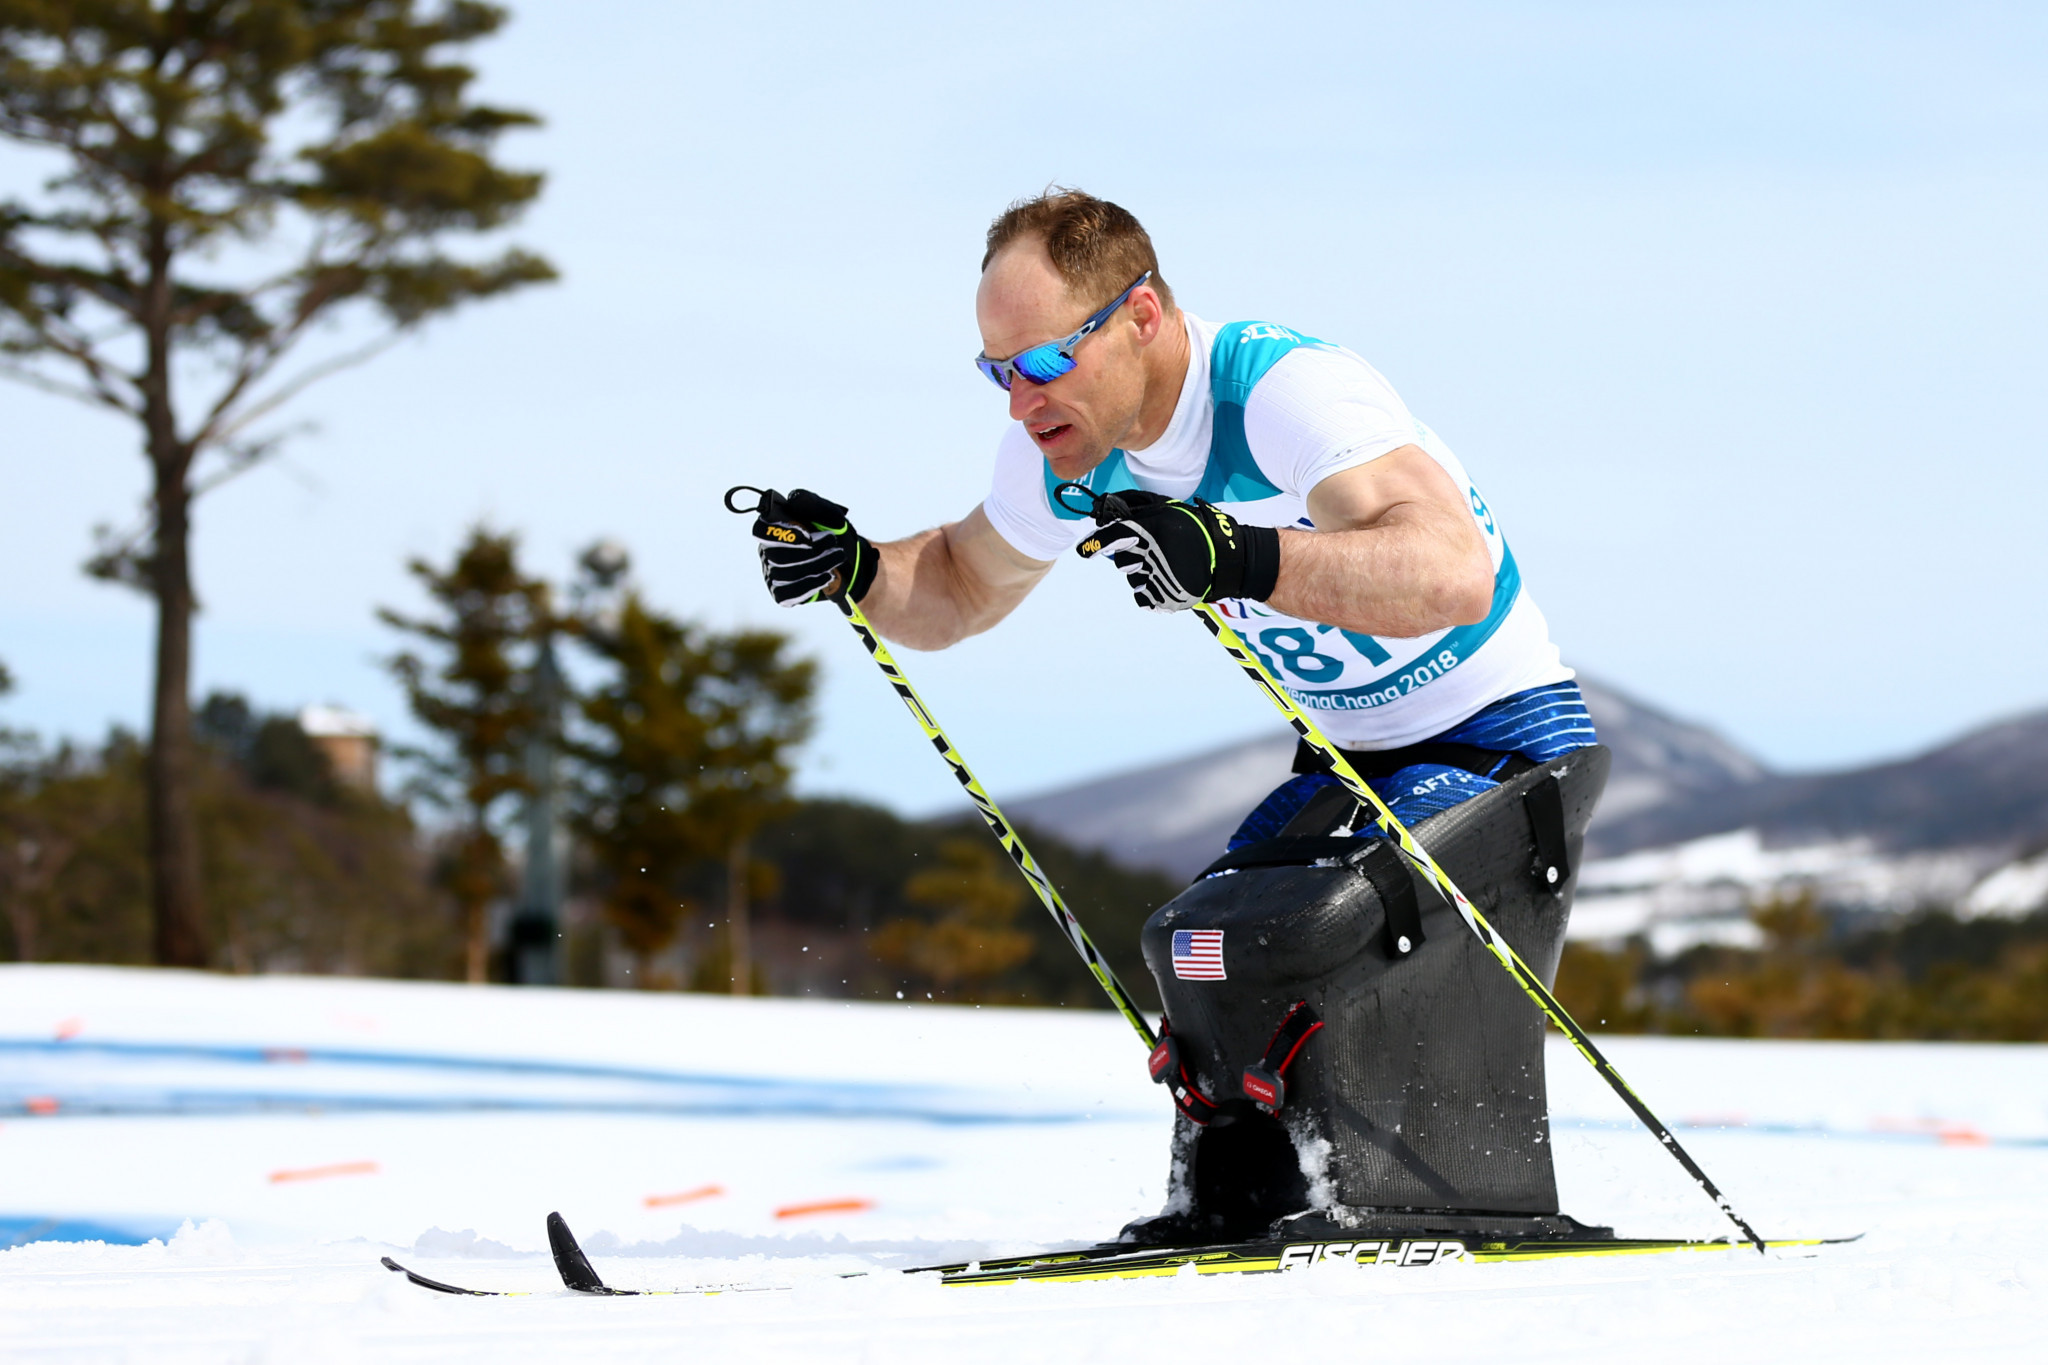 Former Navy Seal Daniel Cnossen won six medals at Pyeongchang 2018 ©Getty Images